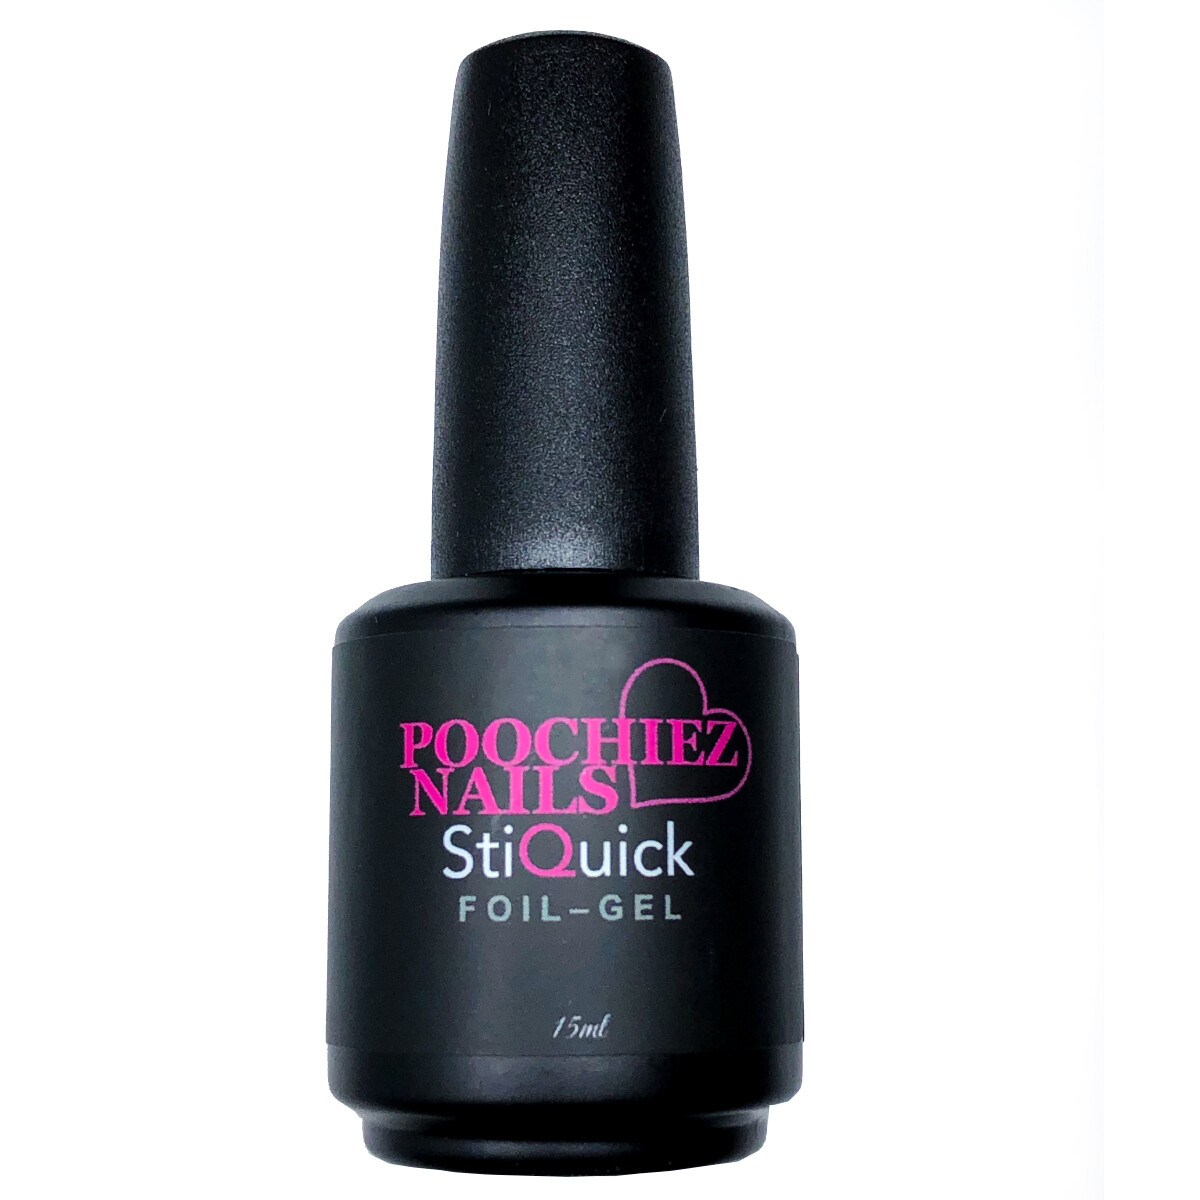 POOCHIEZ NAILS STIQUICK FOIL GEL